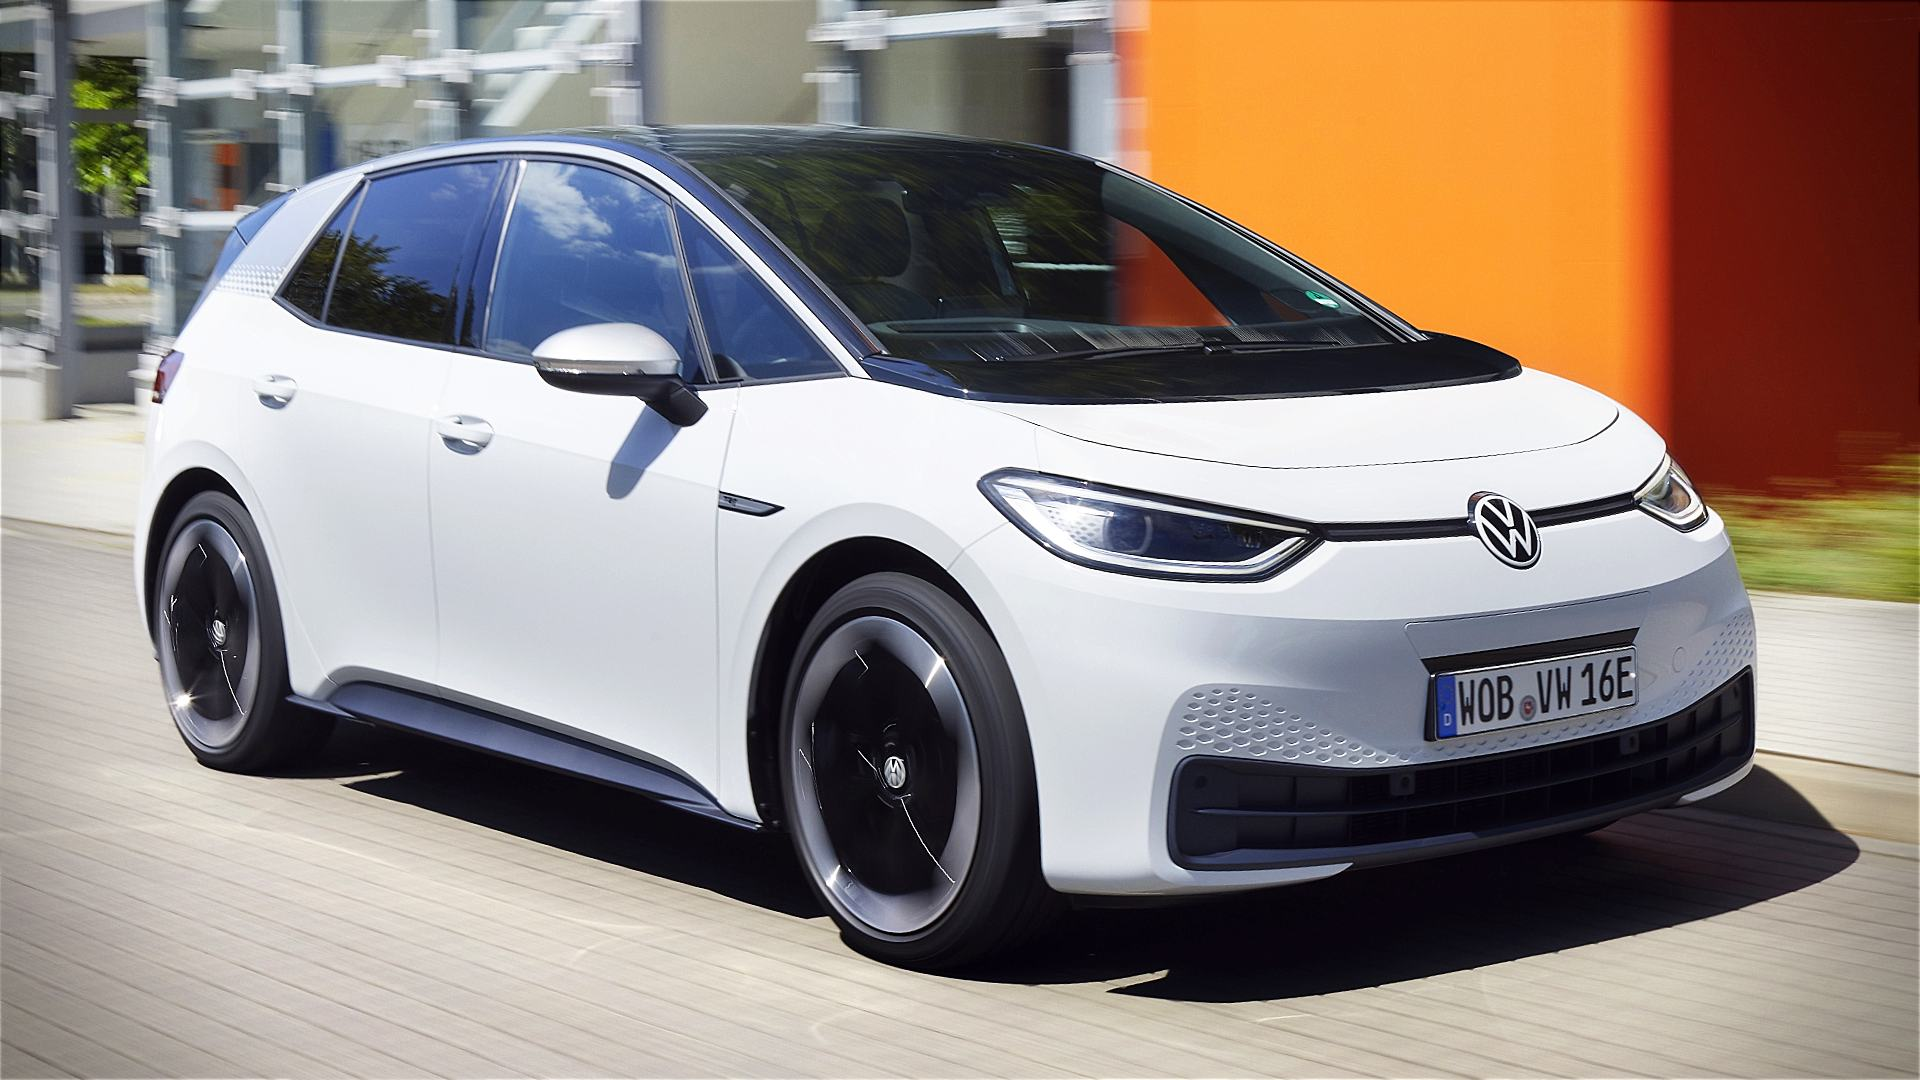 2020 Volkswagen ID 3 Electric Cars